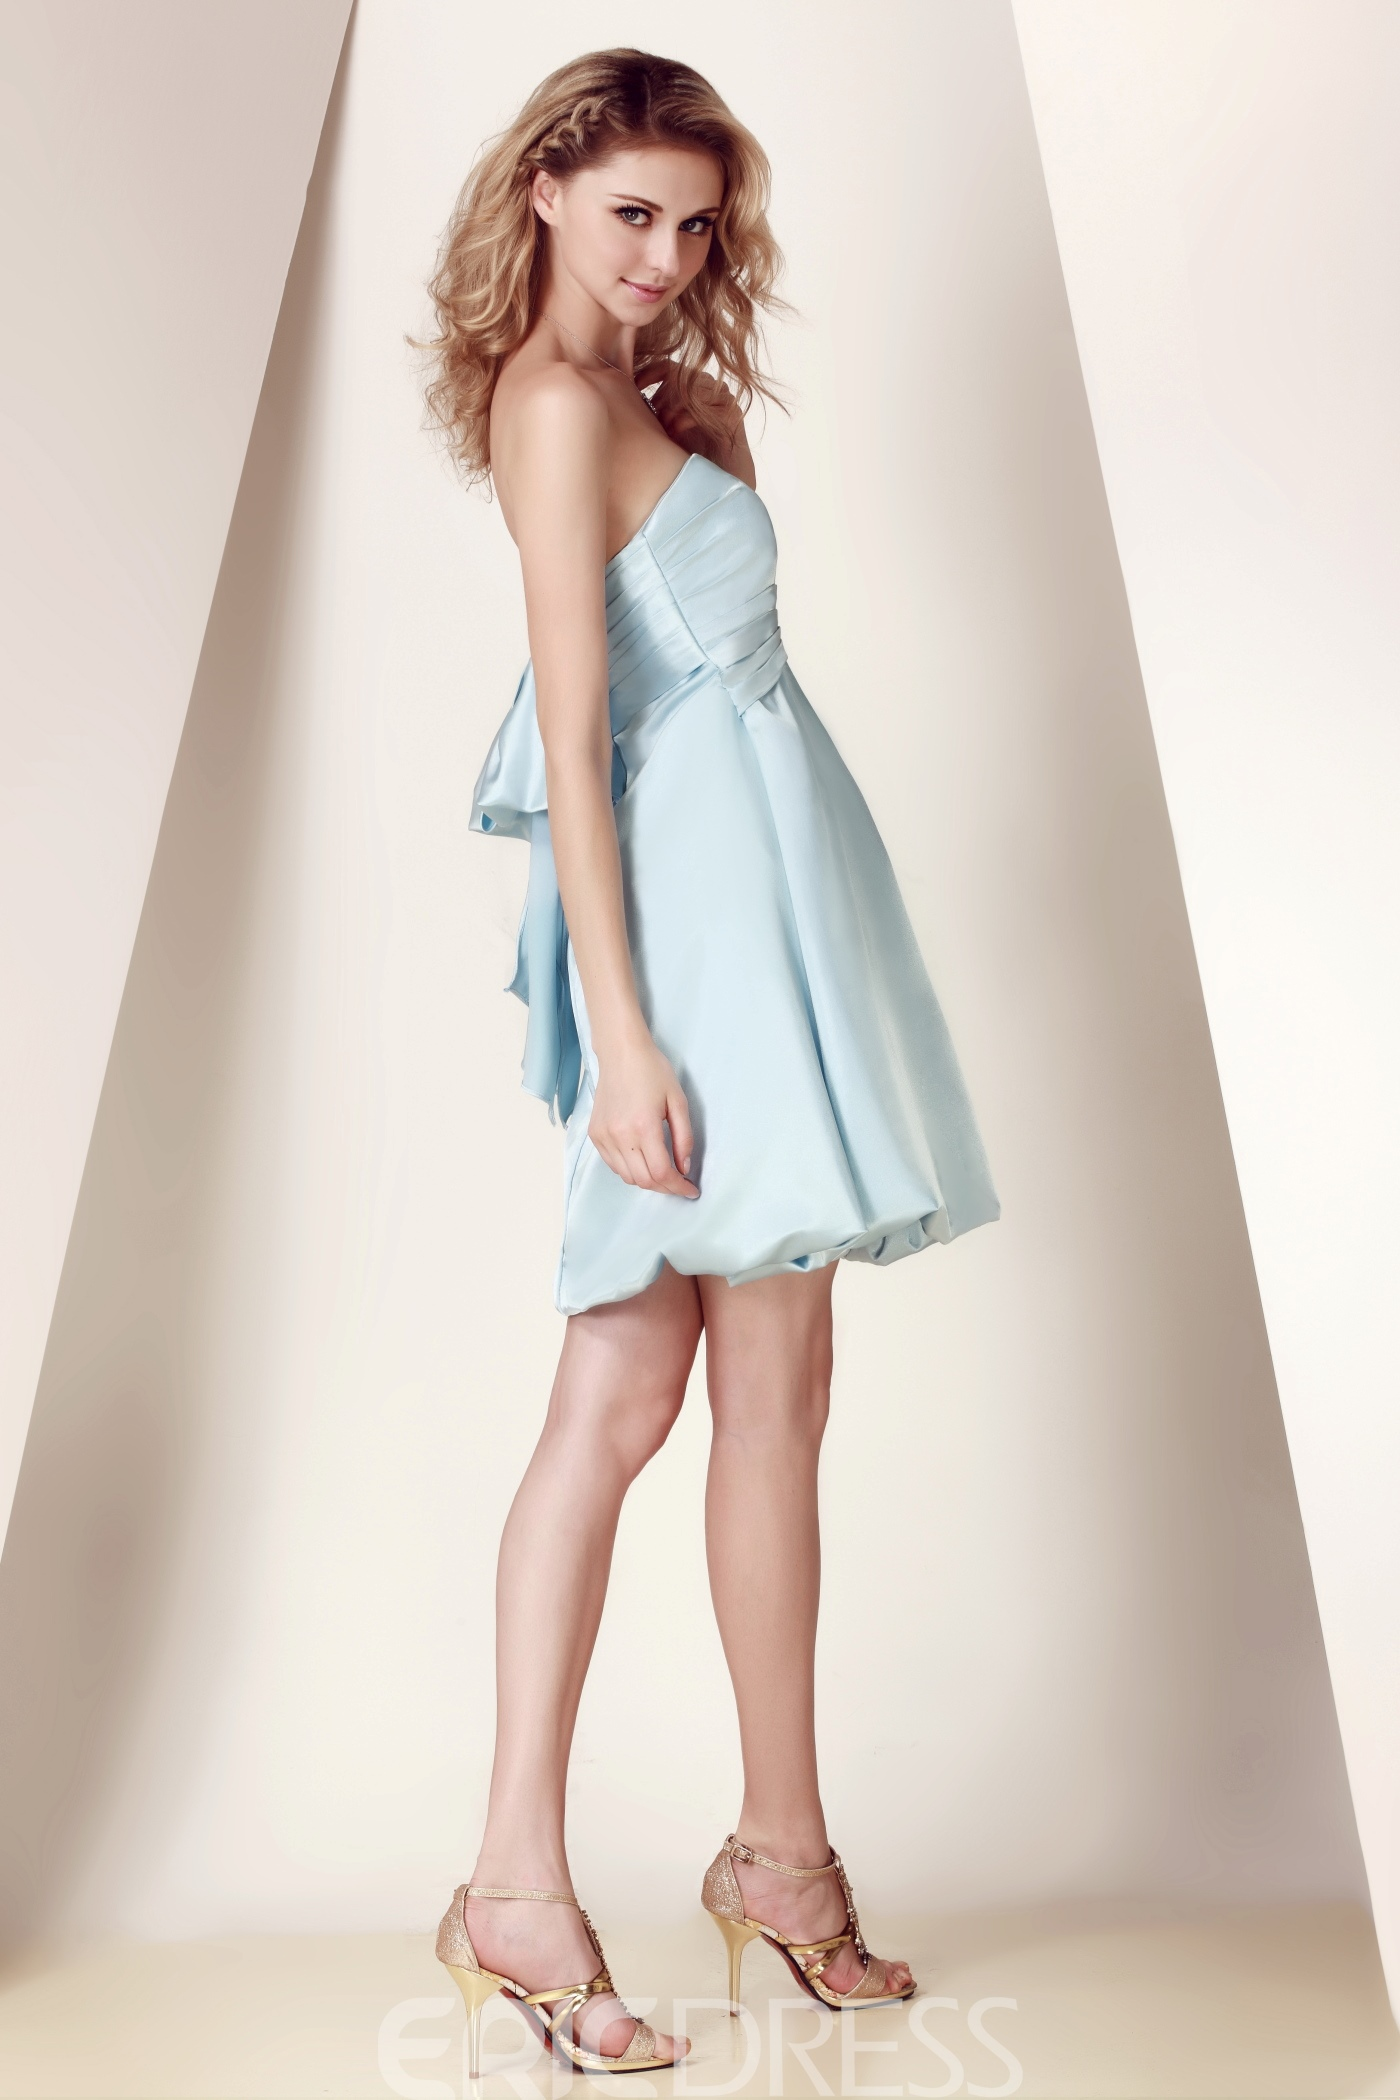 Amazing Bowknot A-Line Strapless Knee-length Dasha's Bridesmaid Dress